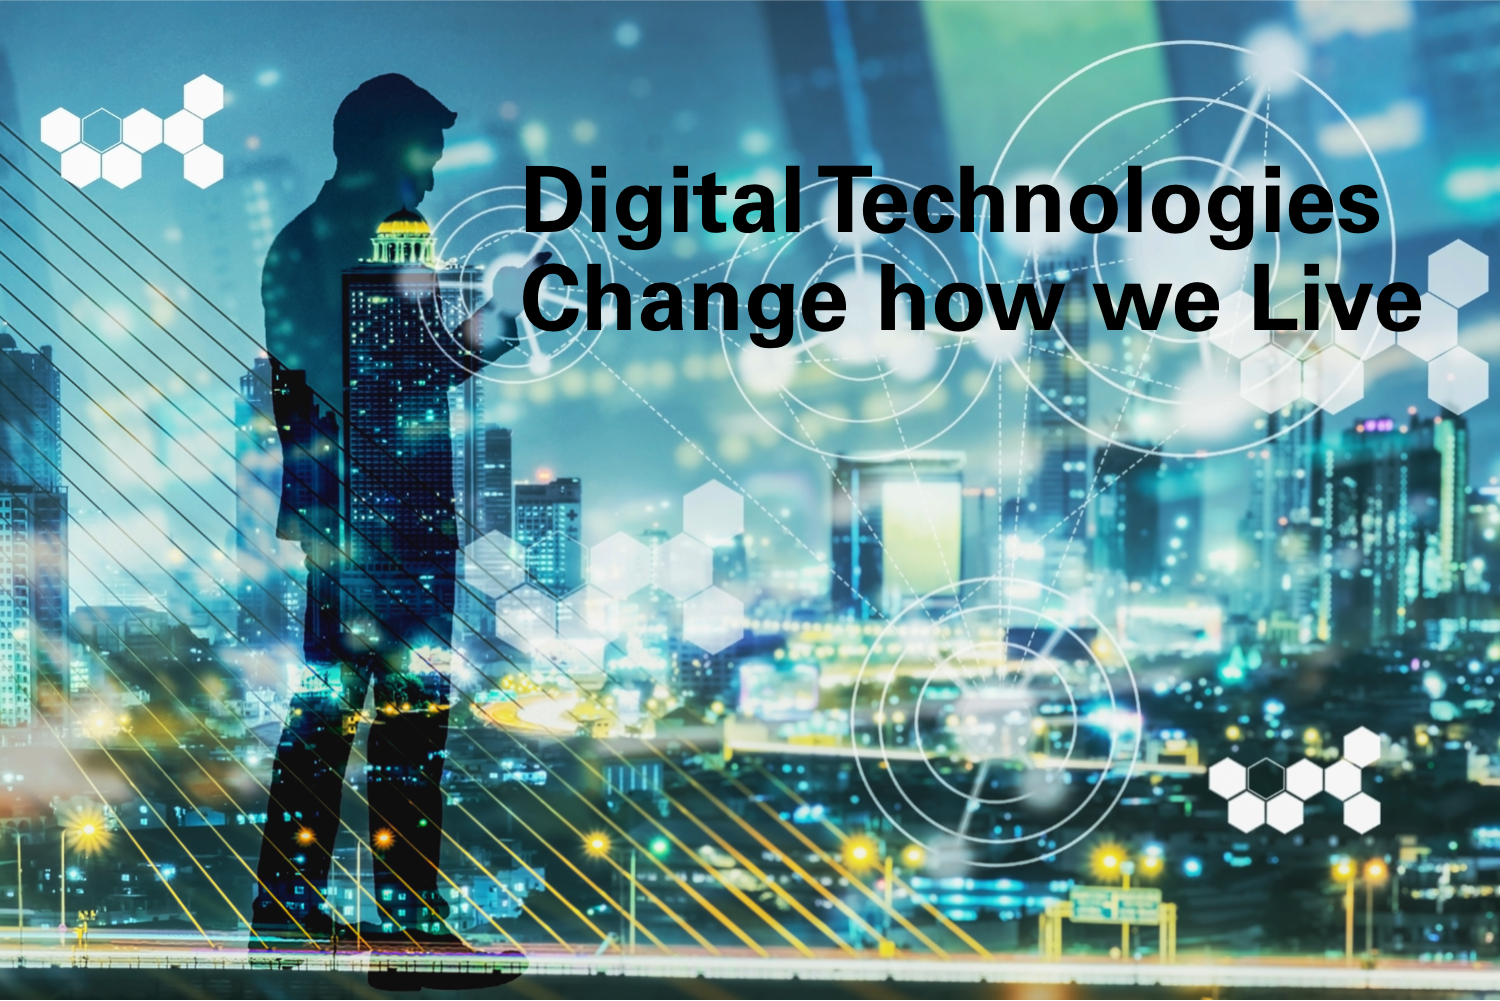 Digital changes our lives